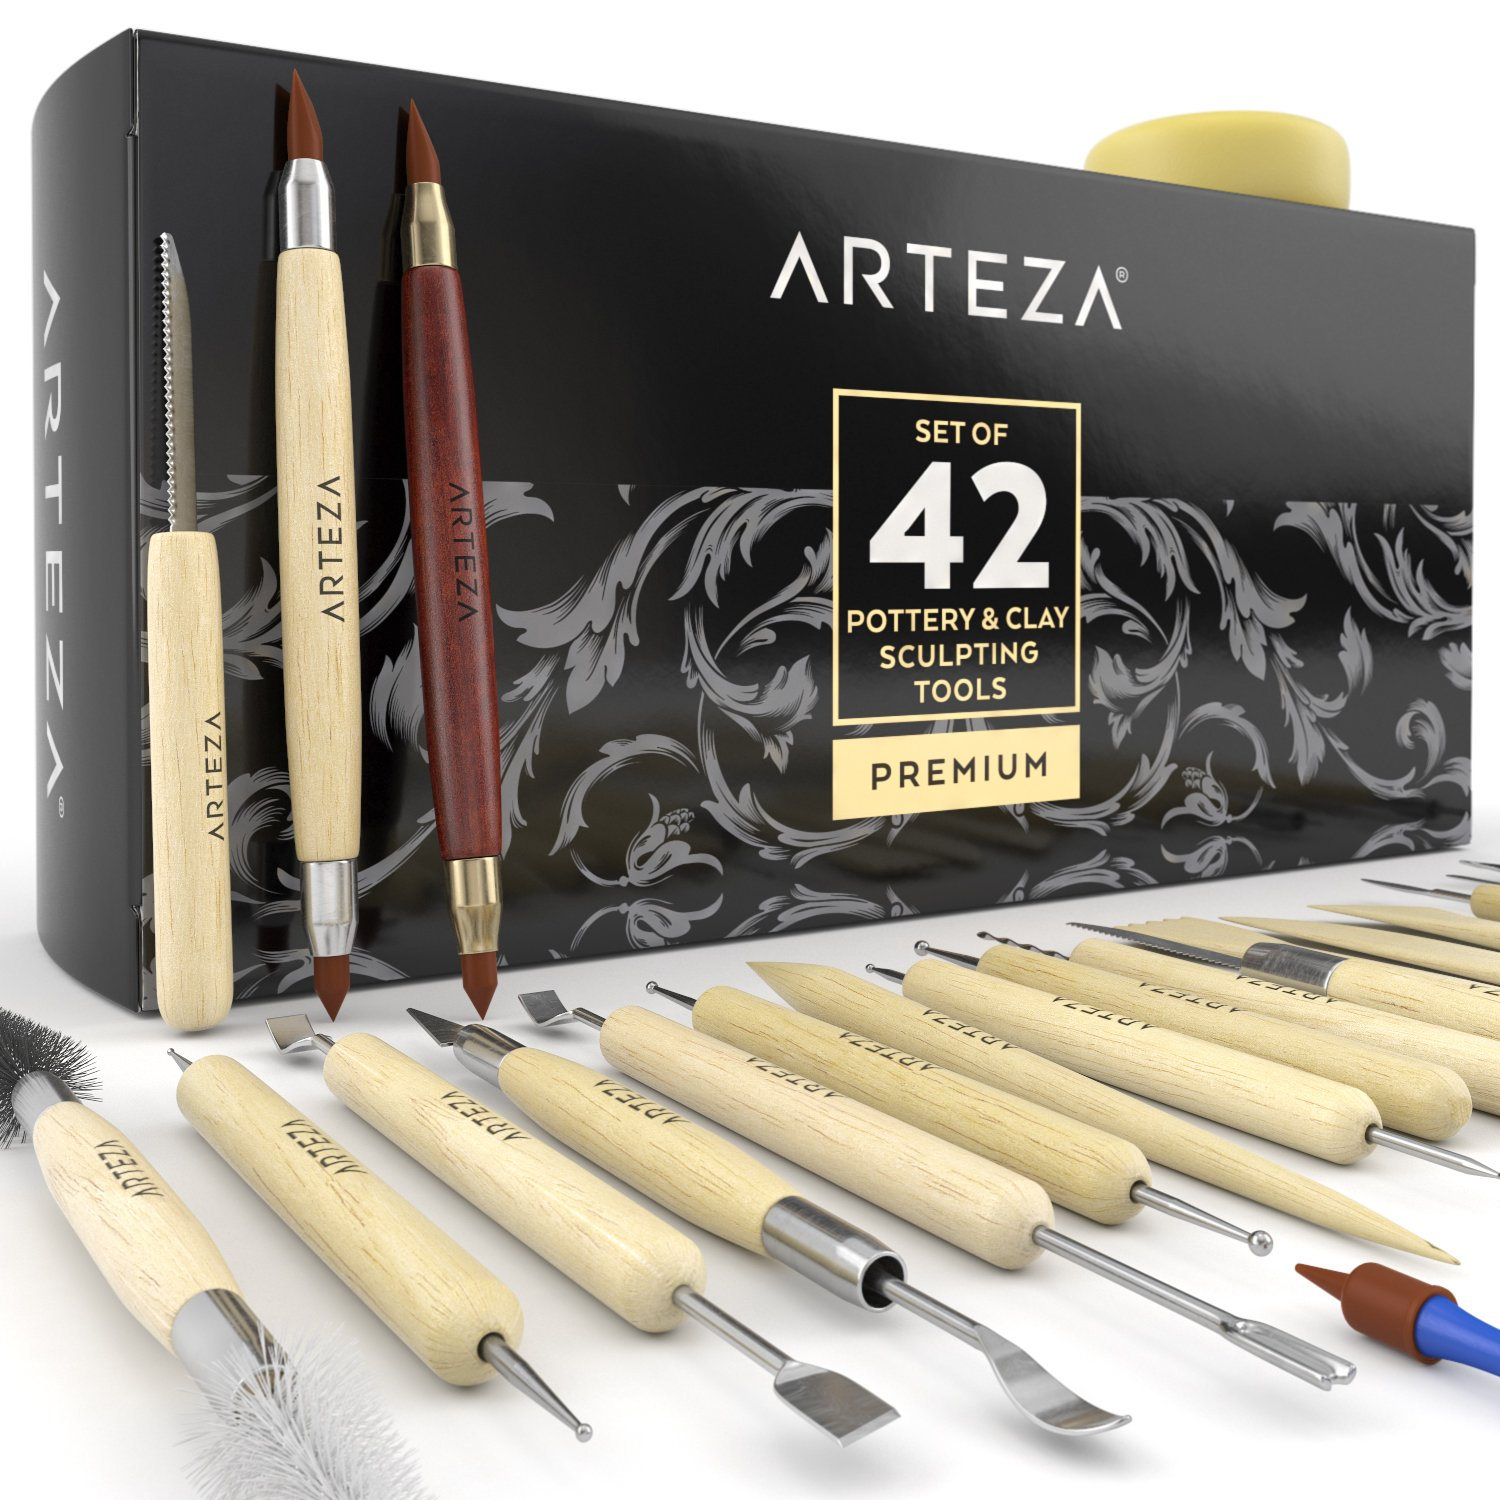 Arteza Pottery & Clay Sculpting Tools (Set of 42) ARTZ-8060